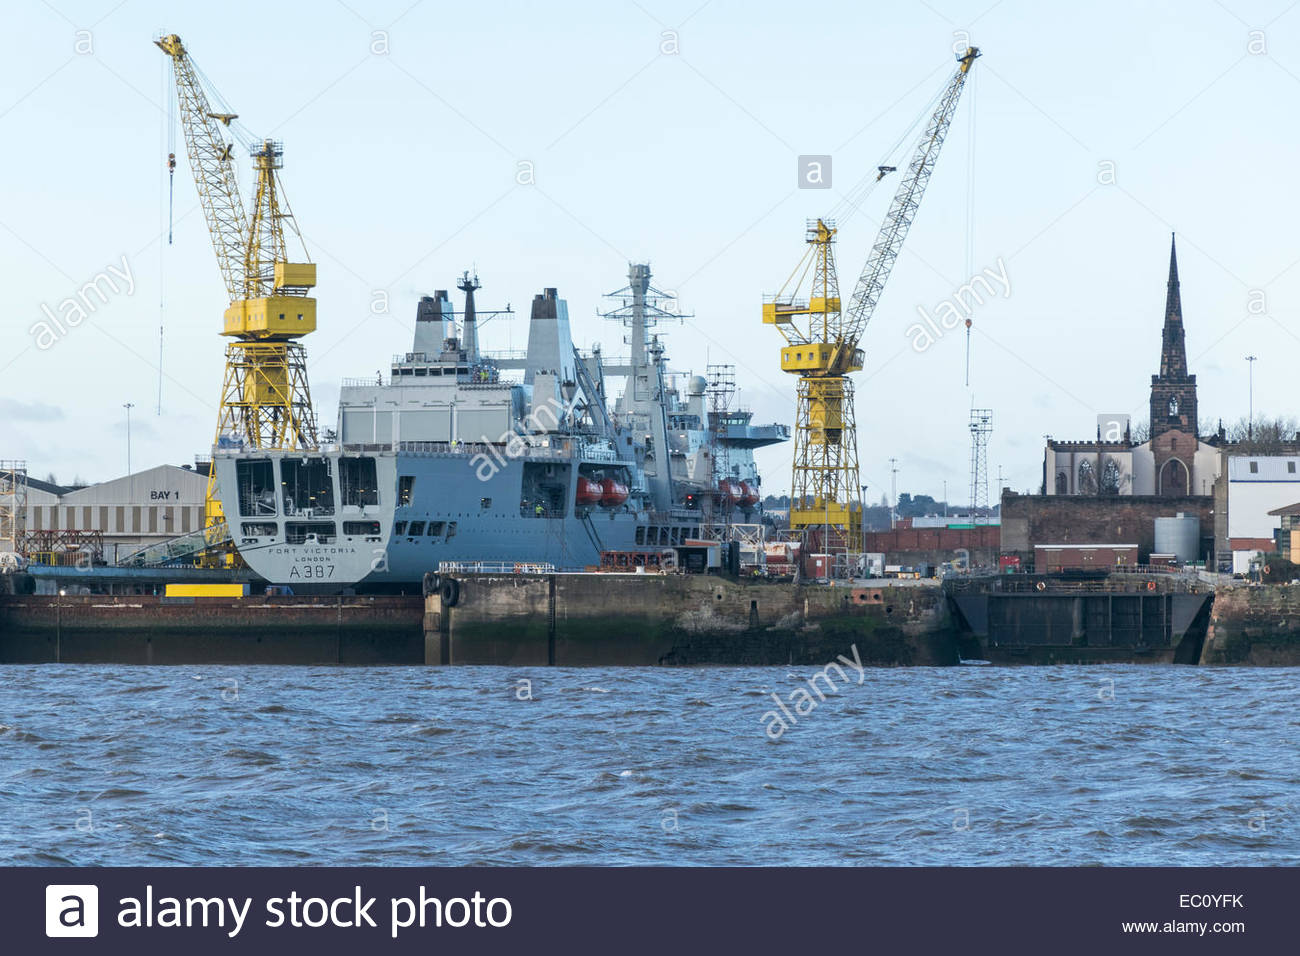 Royal Fleet Auxiliary Fort Victoria, A387, in No. 5 dry dock at Cammell Laird shipyard, Birkenhead, Merseyside - Stock Image